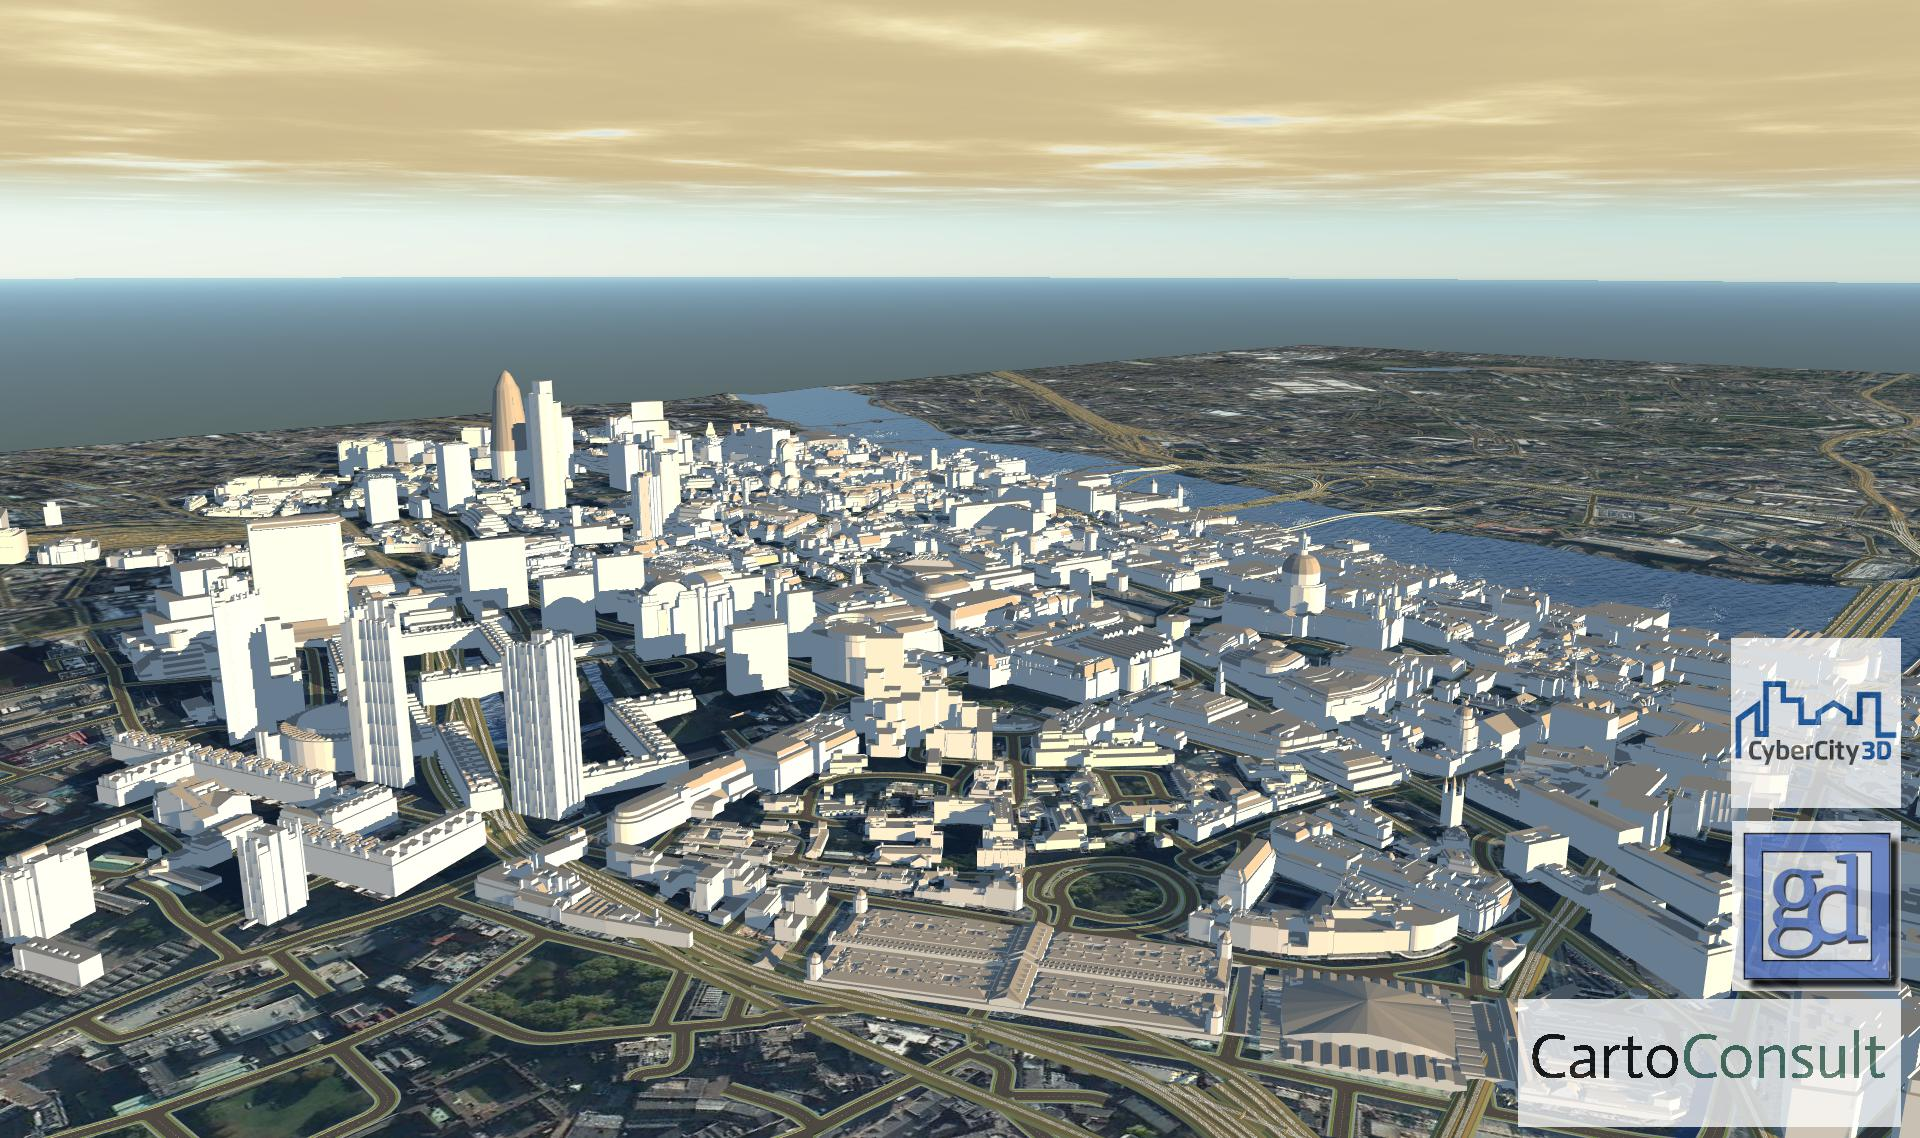 Cartoconsult-3d-city-modelling-3500-3500